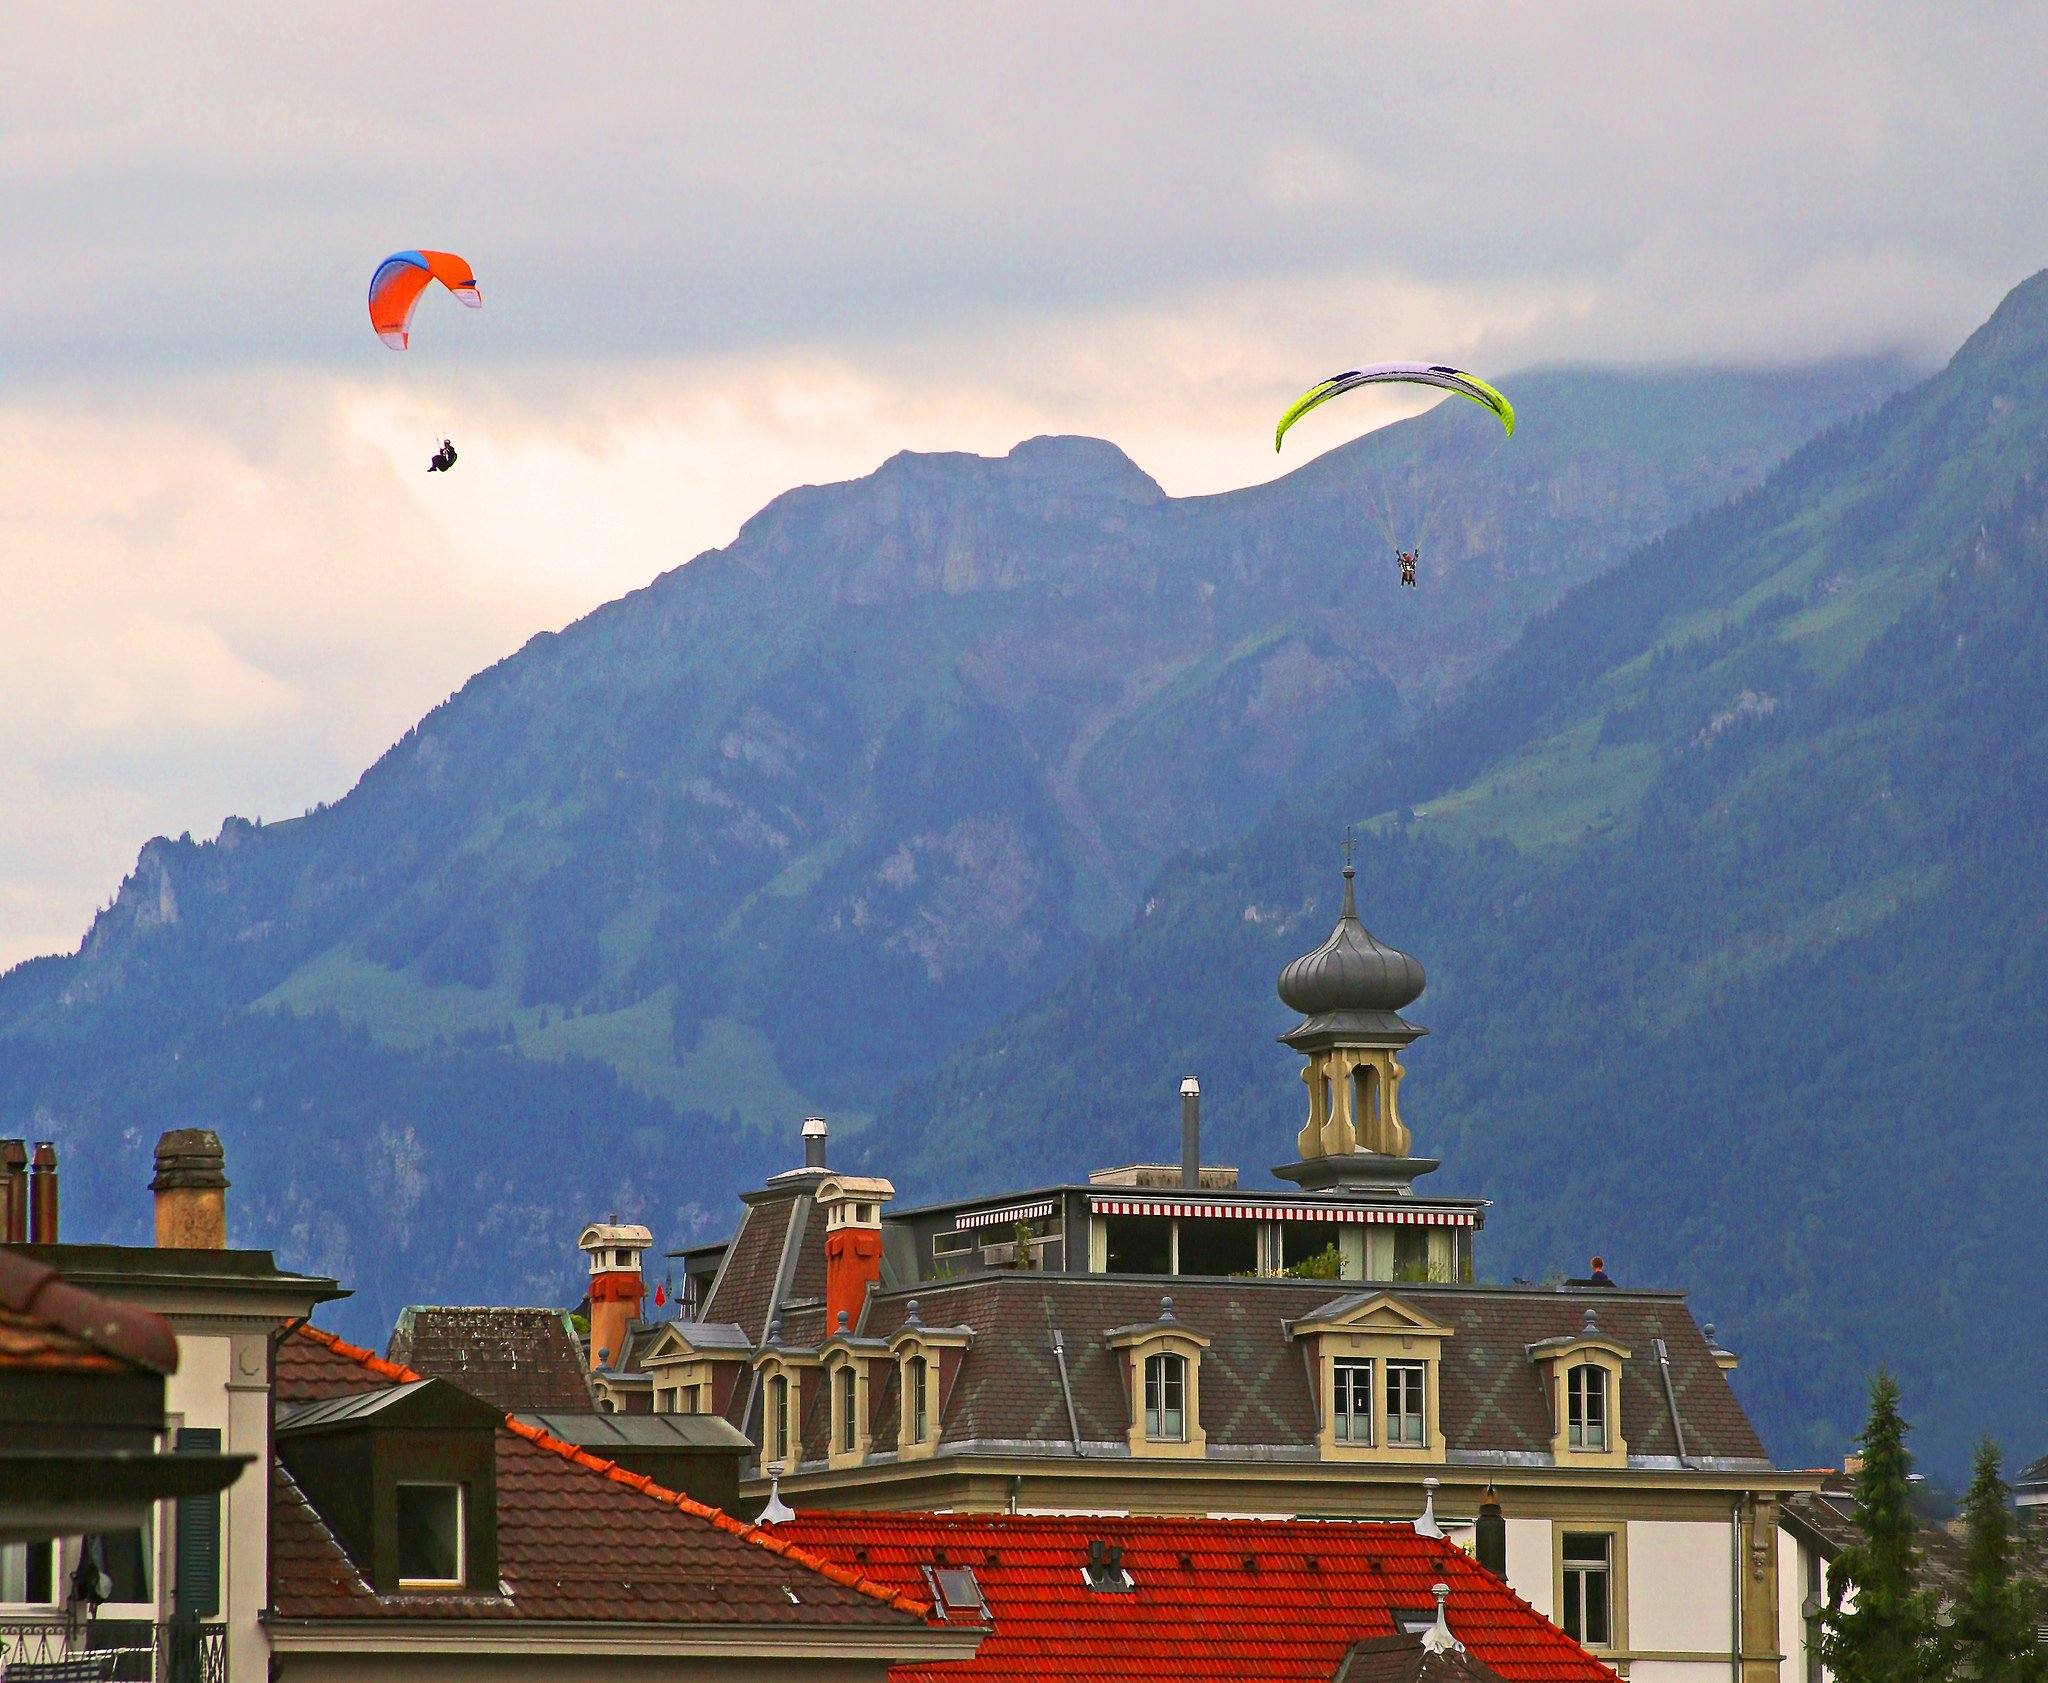 Paragliding Switzerland by: Rennett Stowe (CC)